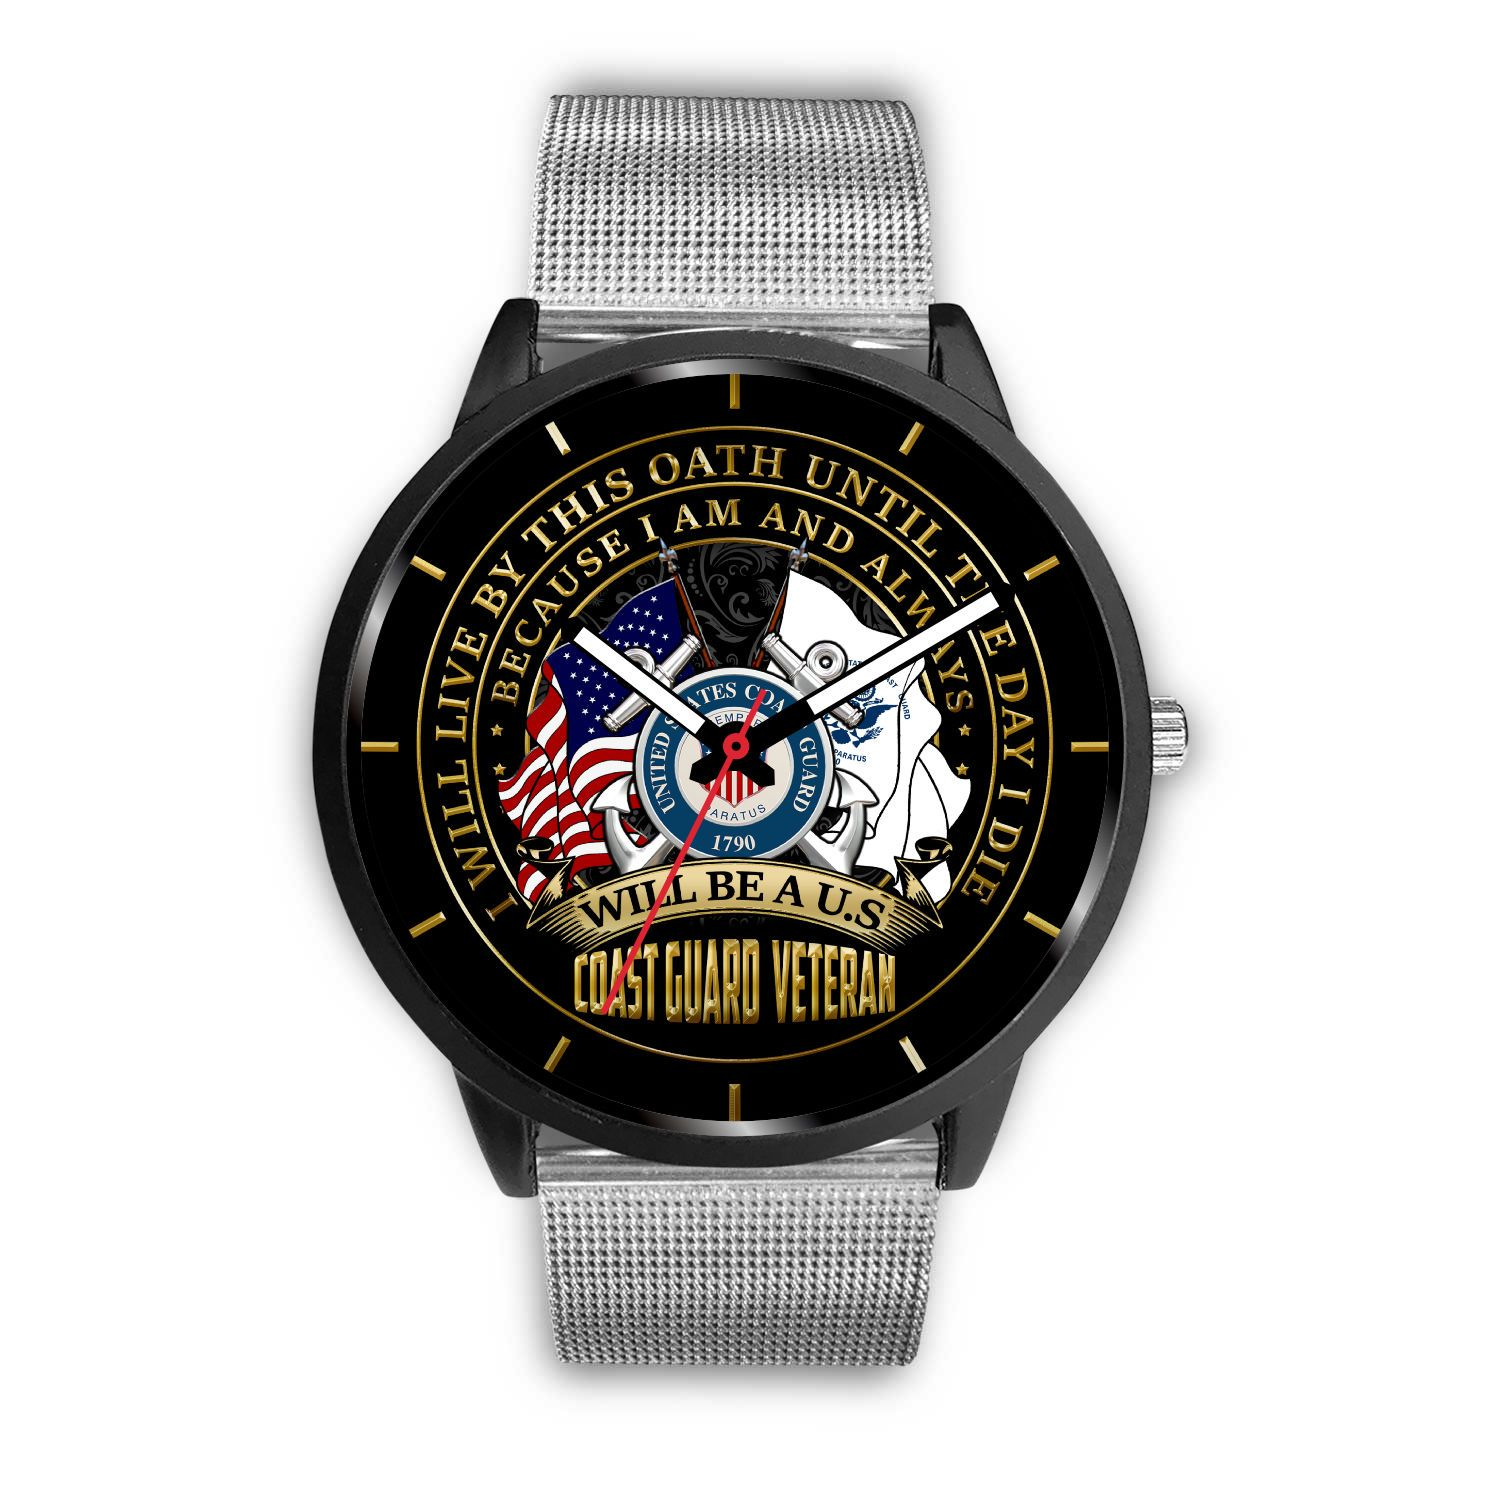 i-will-live_6edf80ad-eb95-562a-16ef-eaa3ee2fff57 I WILL LIVE BY THIS OATH UNTIL THE DAY I DIE BECAUSE I AM AND ALWAYS WILL BE A U.S COAST GUARD VETERAN WATCH  %tag